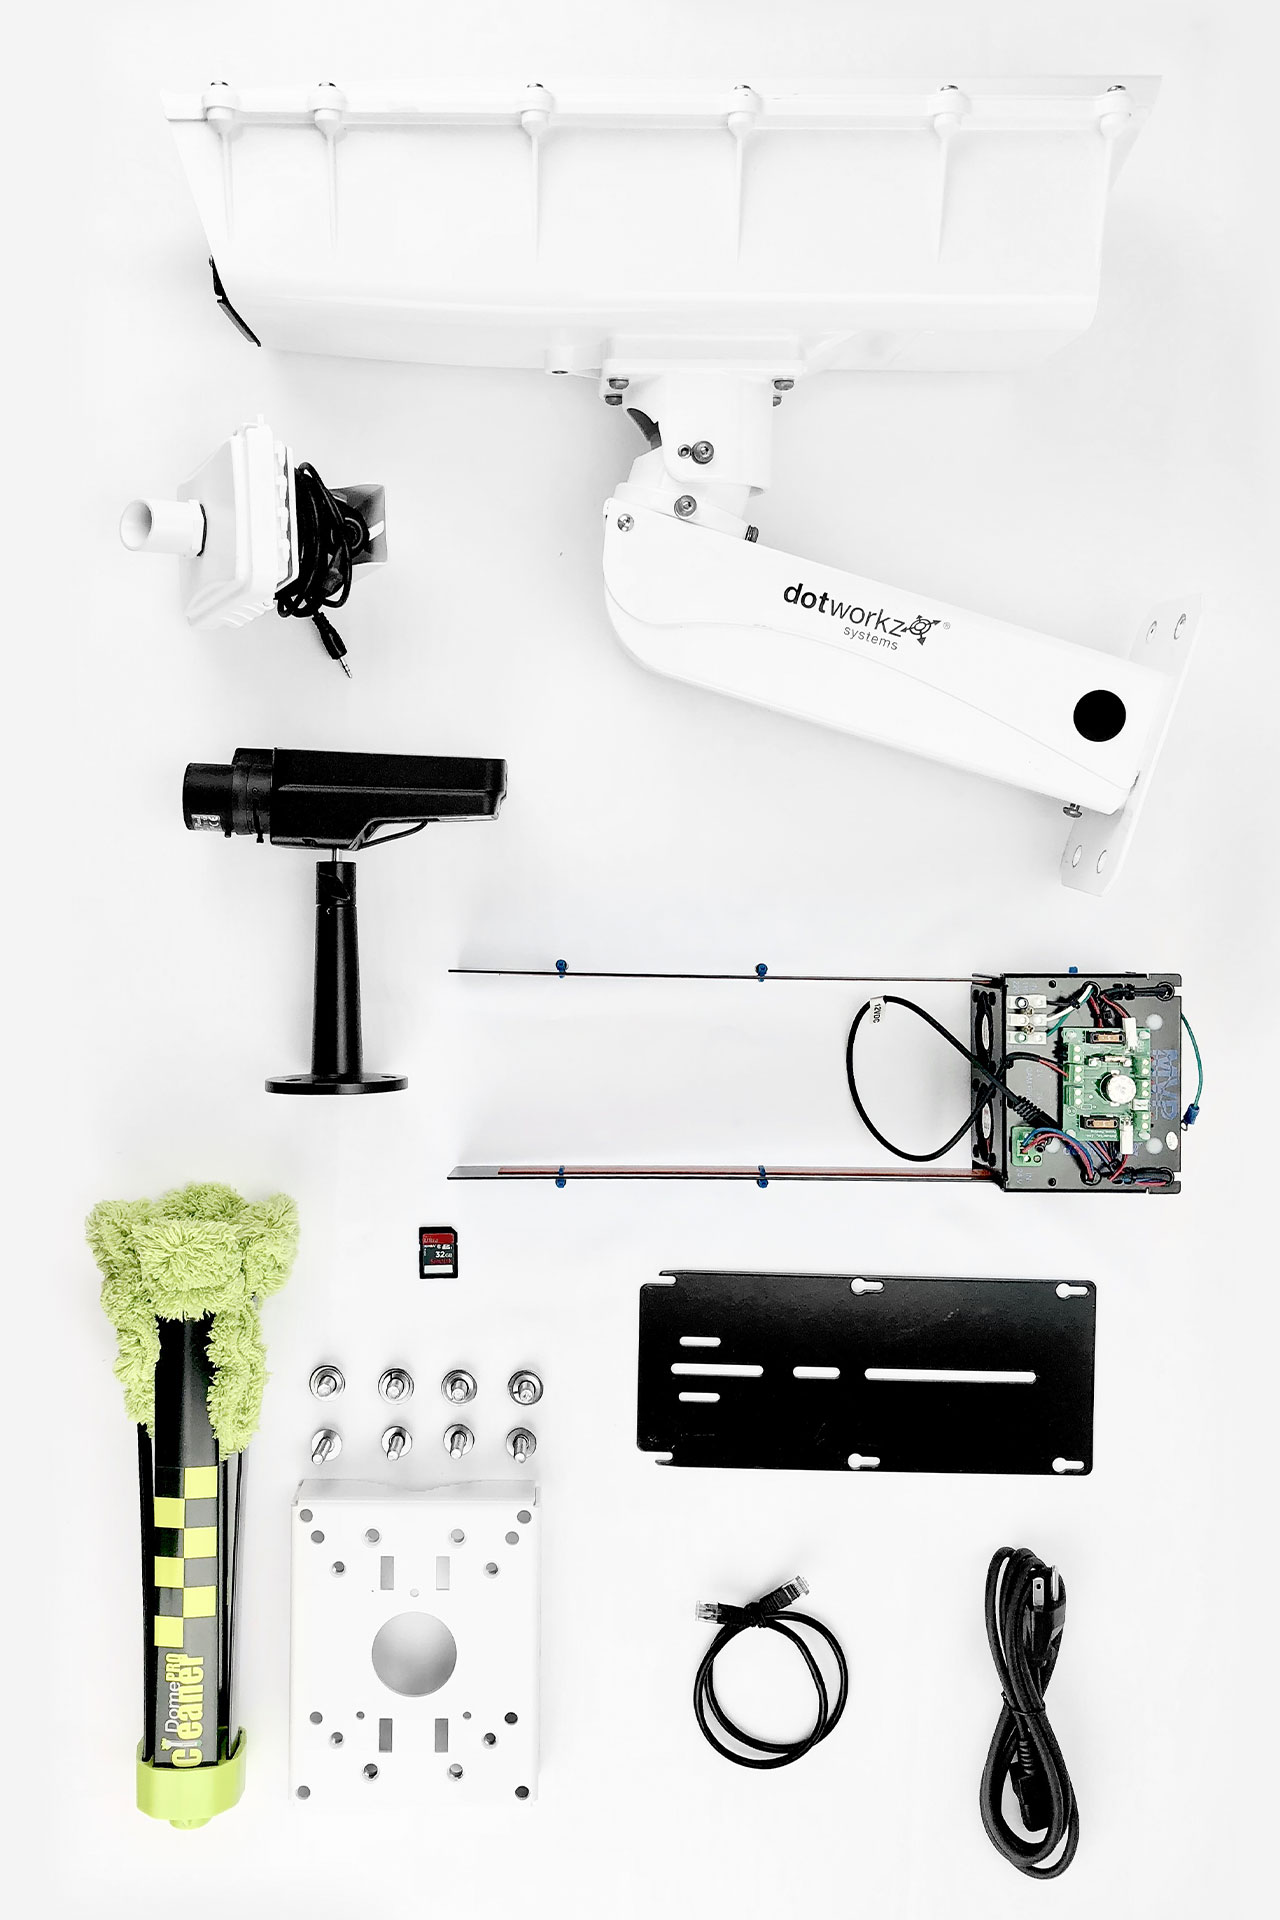 Cold Weather Static Camera Hardware Package all components